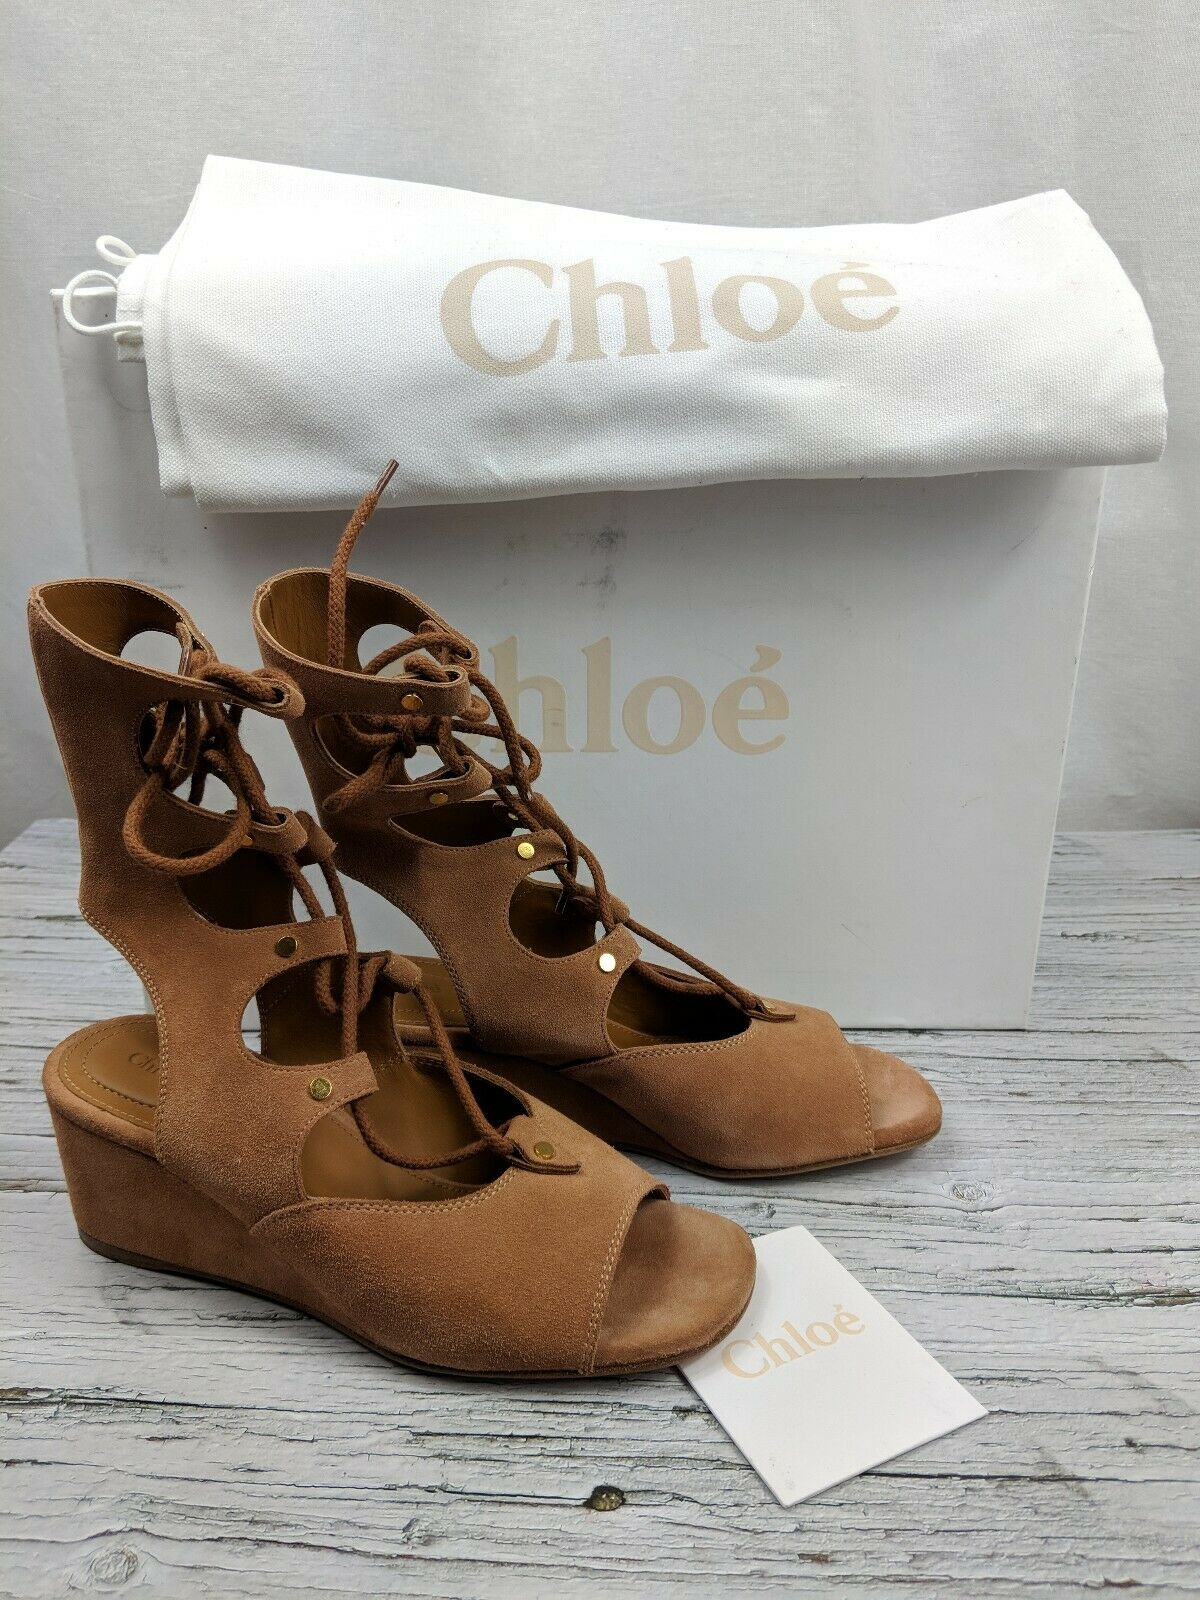 NEW Chloe Camel Suede Lace Up Gladiator Wedge Sandals Sz 36 US 6  950